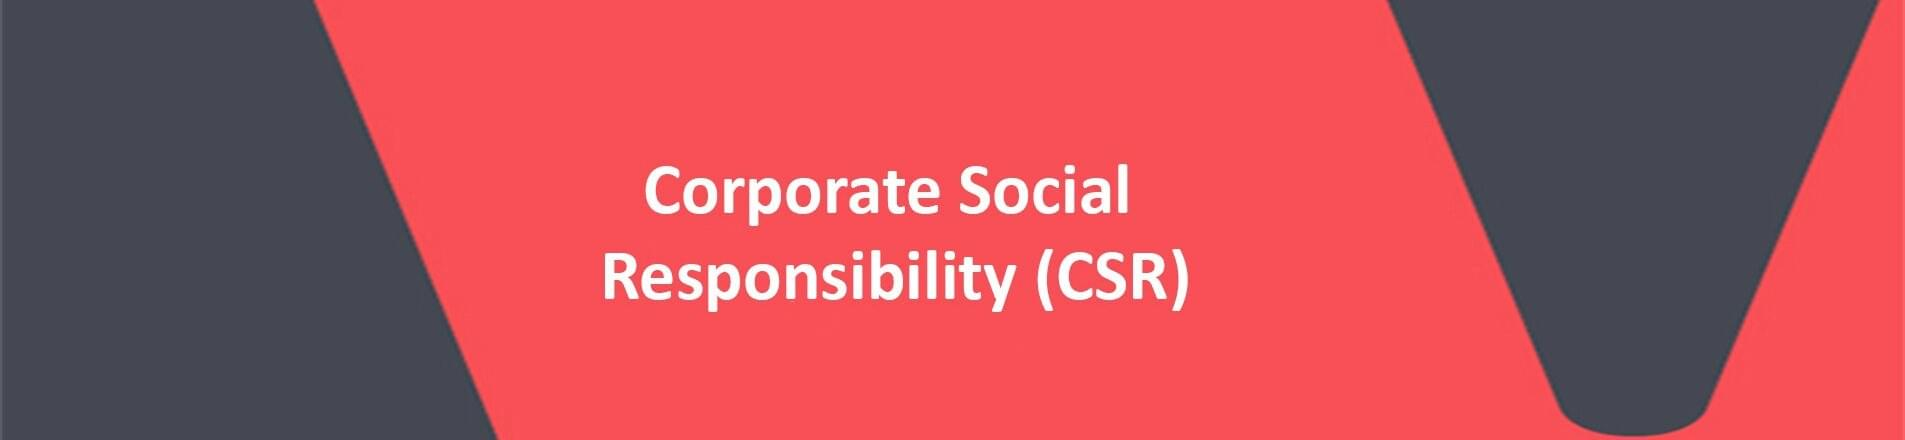 Corporate Social Responsibility (CSR).